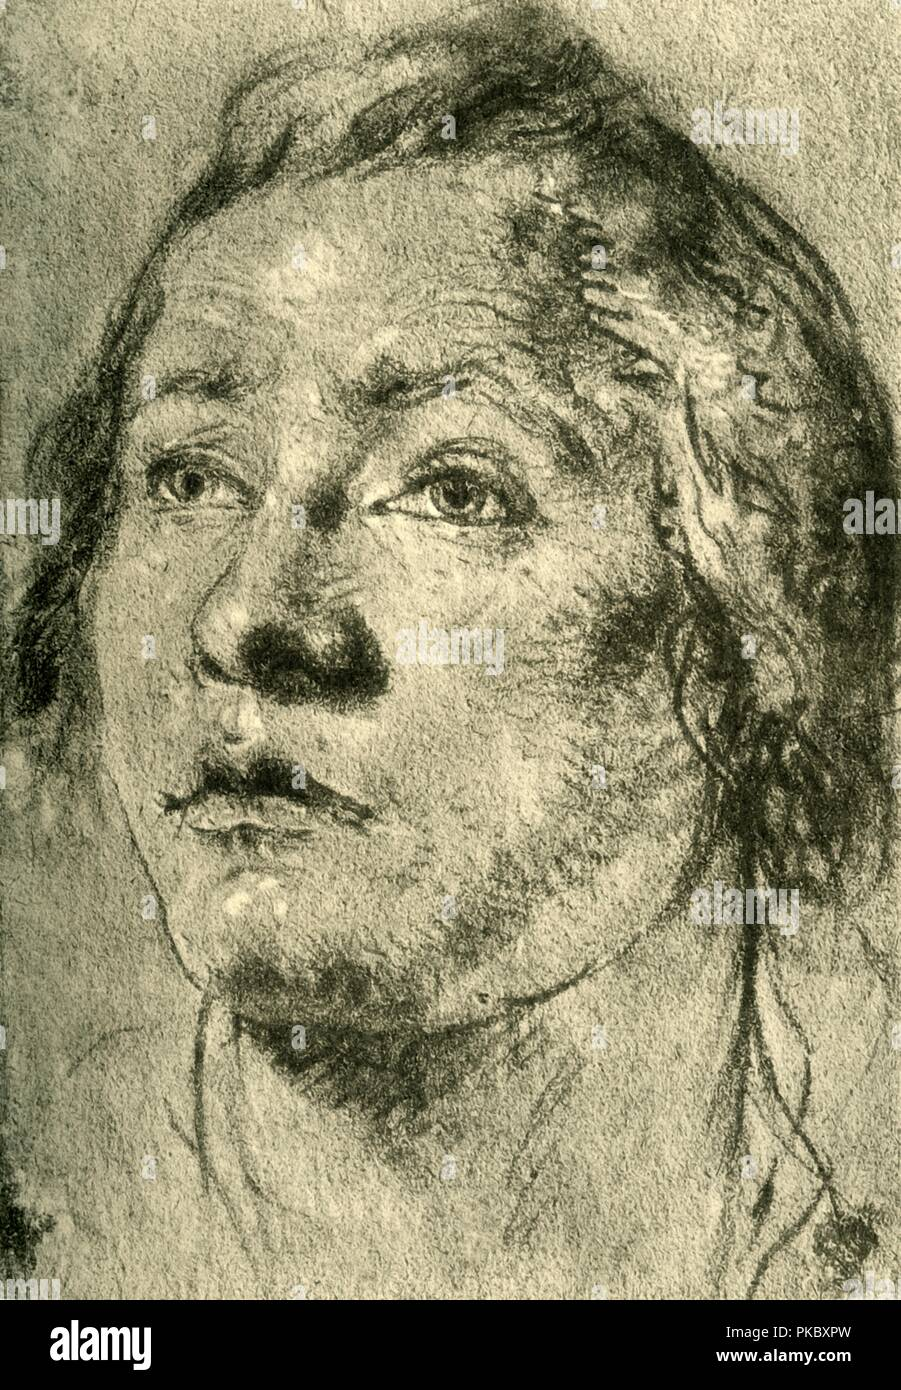 'Head of a Young Man', mid 18th century, (1928). Chalk on paper. At one time known to have been in the collection of the Staatliche Sammlungen, Weimar, Germany. Italian Venetian painter and printmaker Giovanni Battista Tiepolo (1696-1770), worked not only in Italy, but also in Germany and Spain. He was commissioned to carry out frescoes in churches and palaces, and was elected President of the Academy of Padua. As well as his large-scale majestic works, he also produced etchings and oil paintings, and is widely regarded as one of the most important artists of the period. Illustration from The  - Stock Image